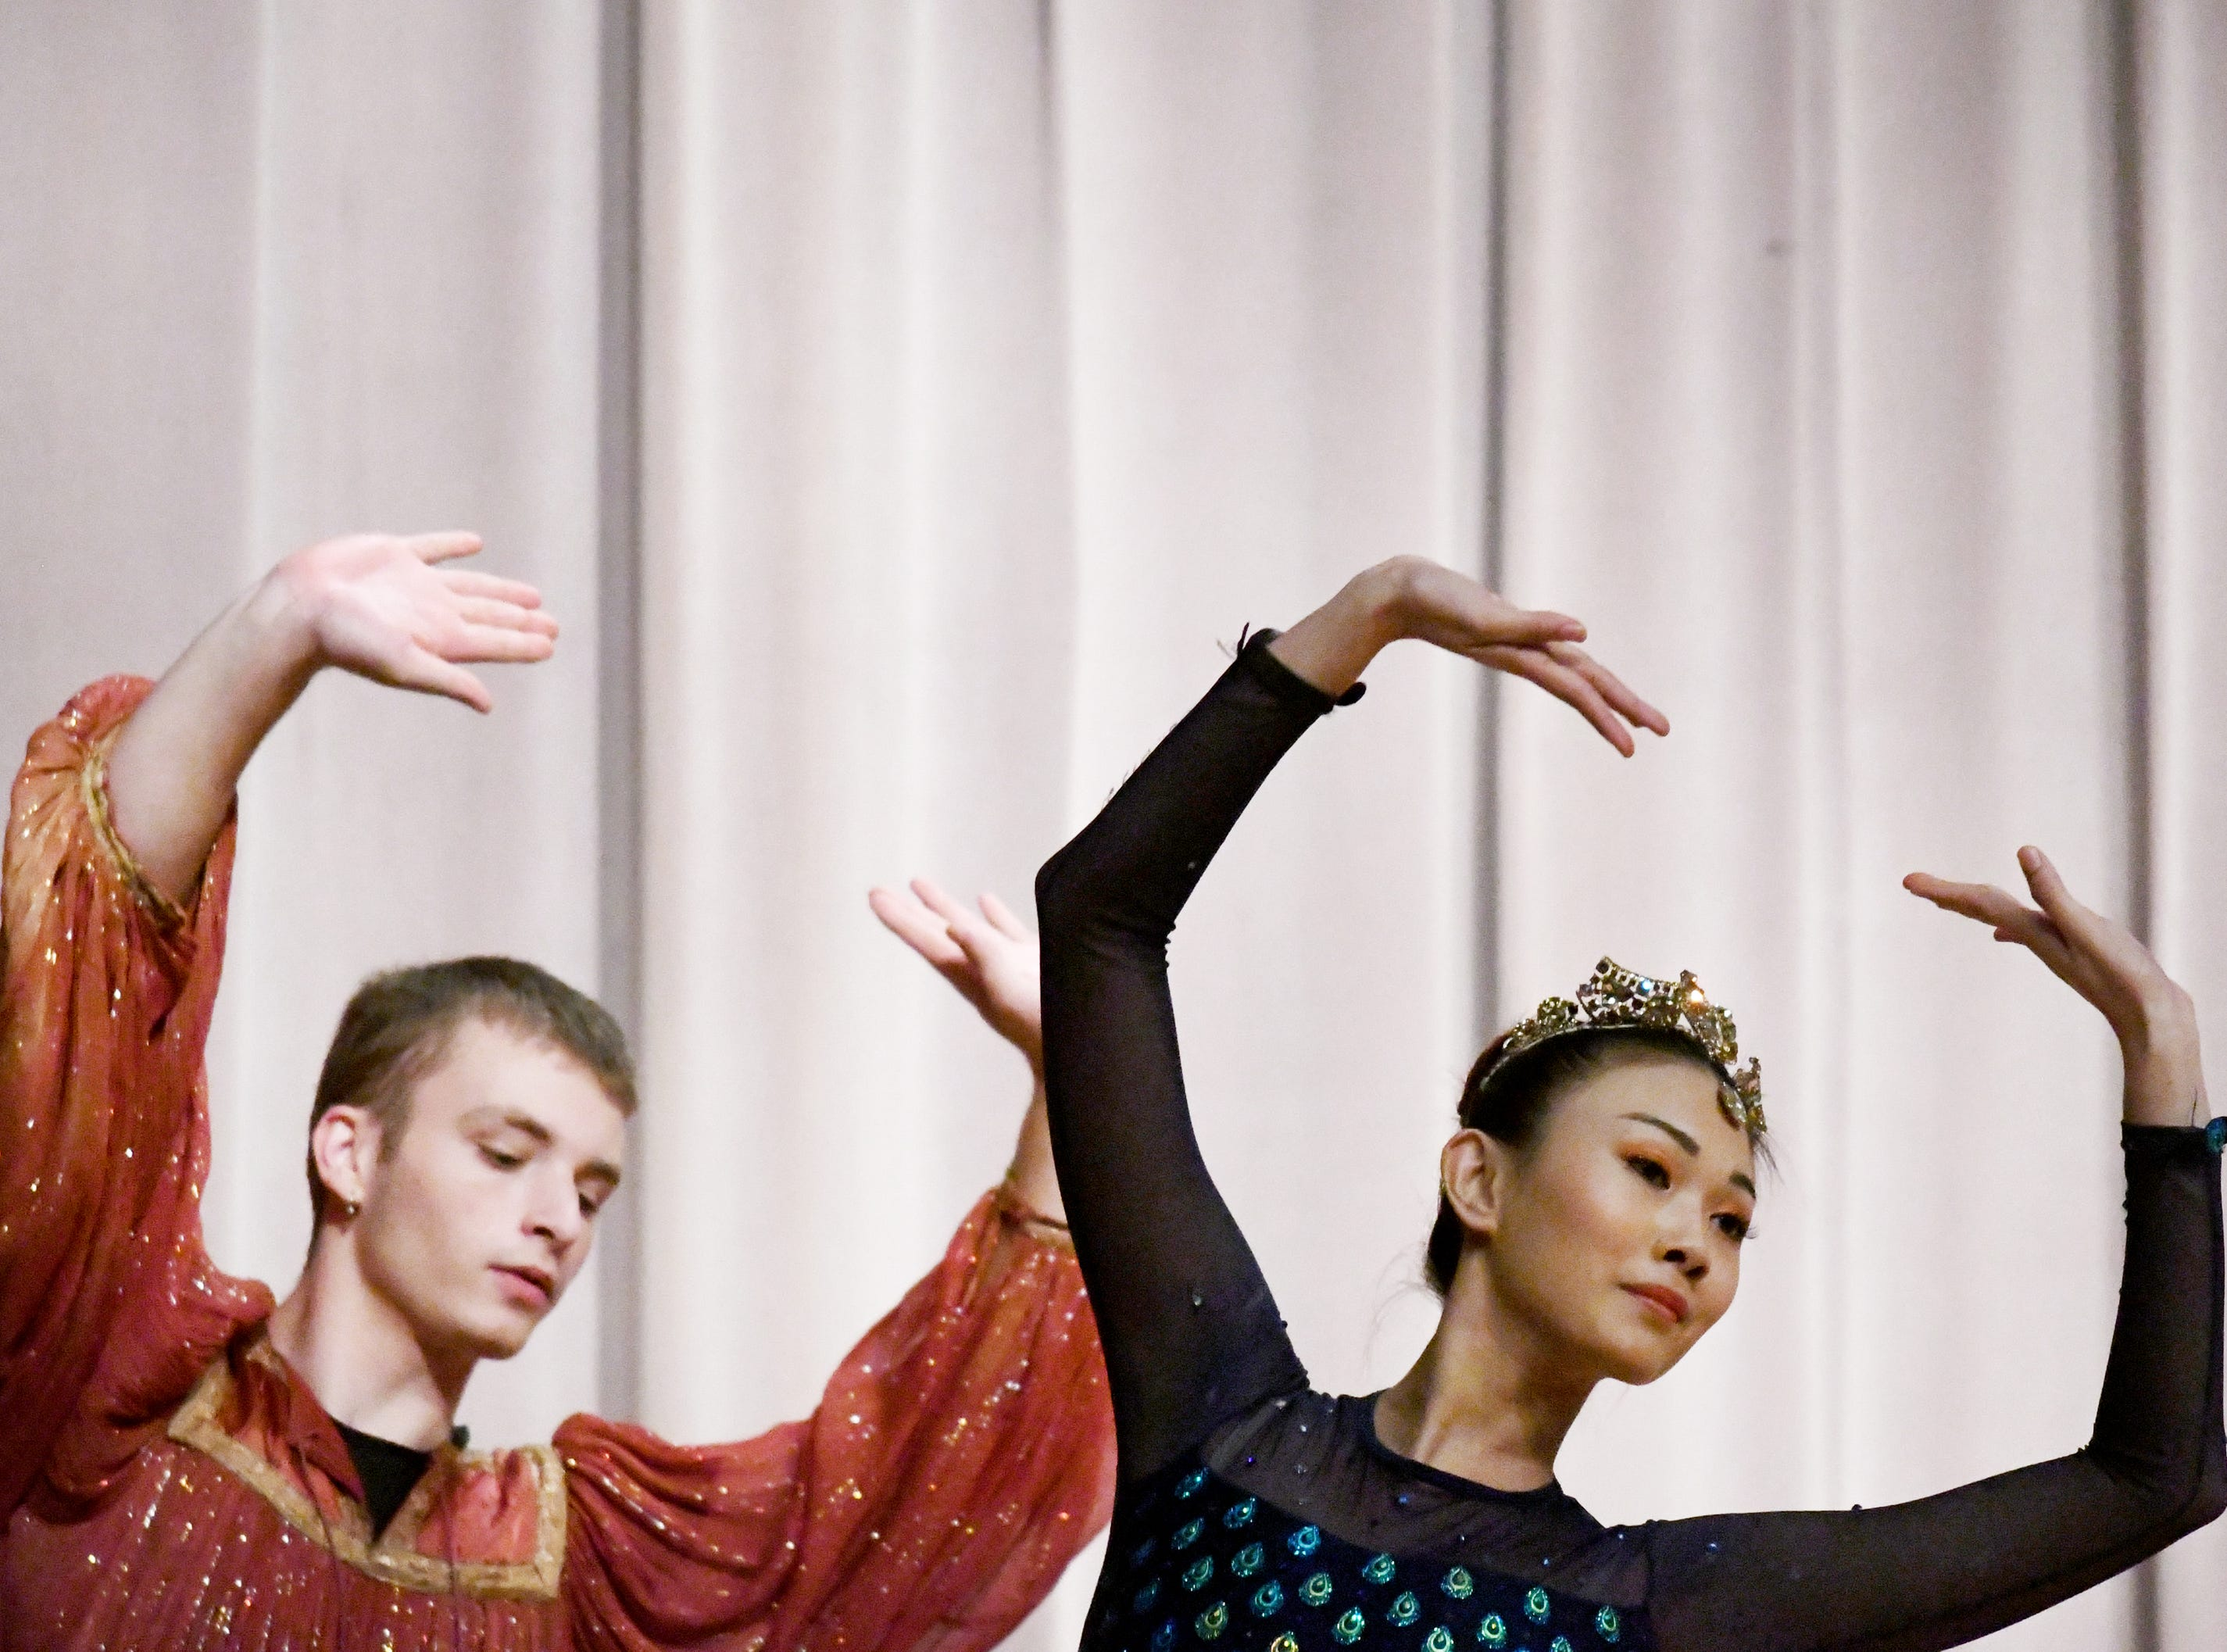 The South Mississippi Ballet Theatre performs parts of the Nutcracker for students at Rowan Elementary on Thursday, December 6, 2018.